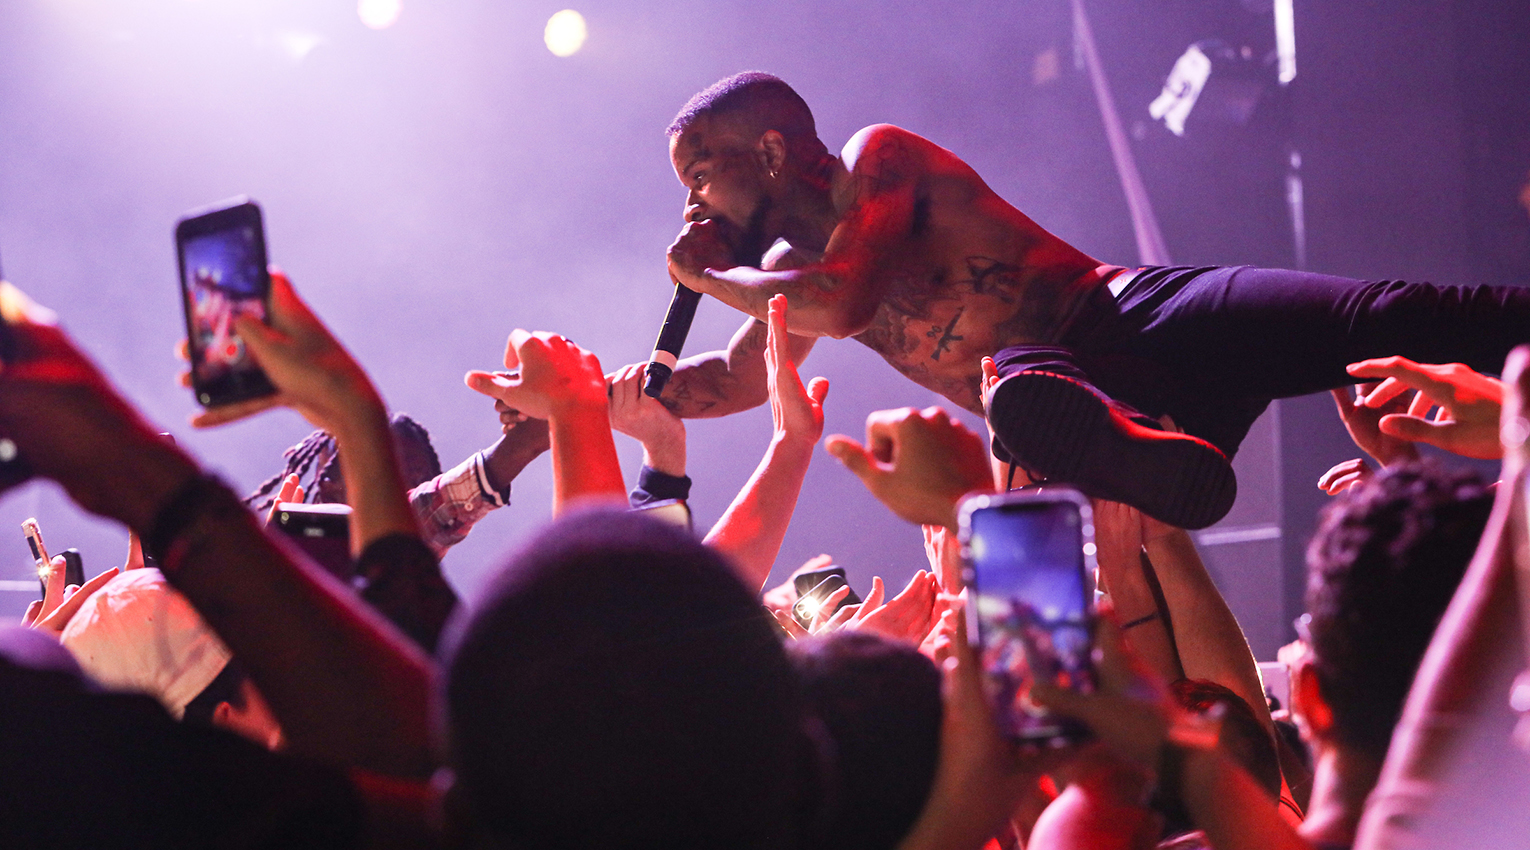 Rapper Tory Lanez crowdsurfing during his performance at Suffolk's Fall concert